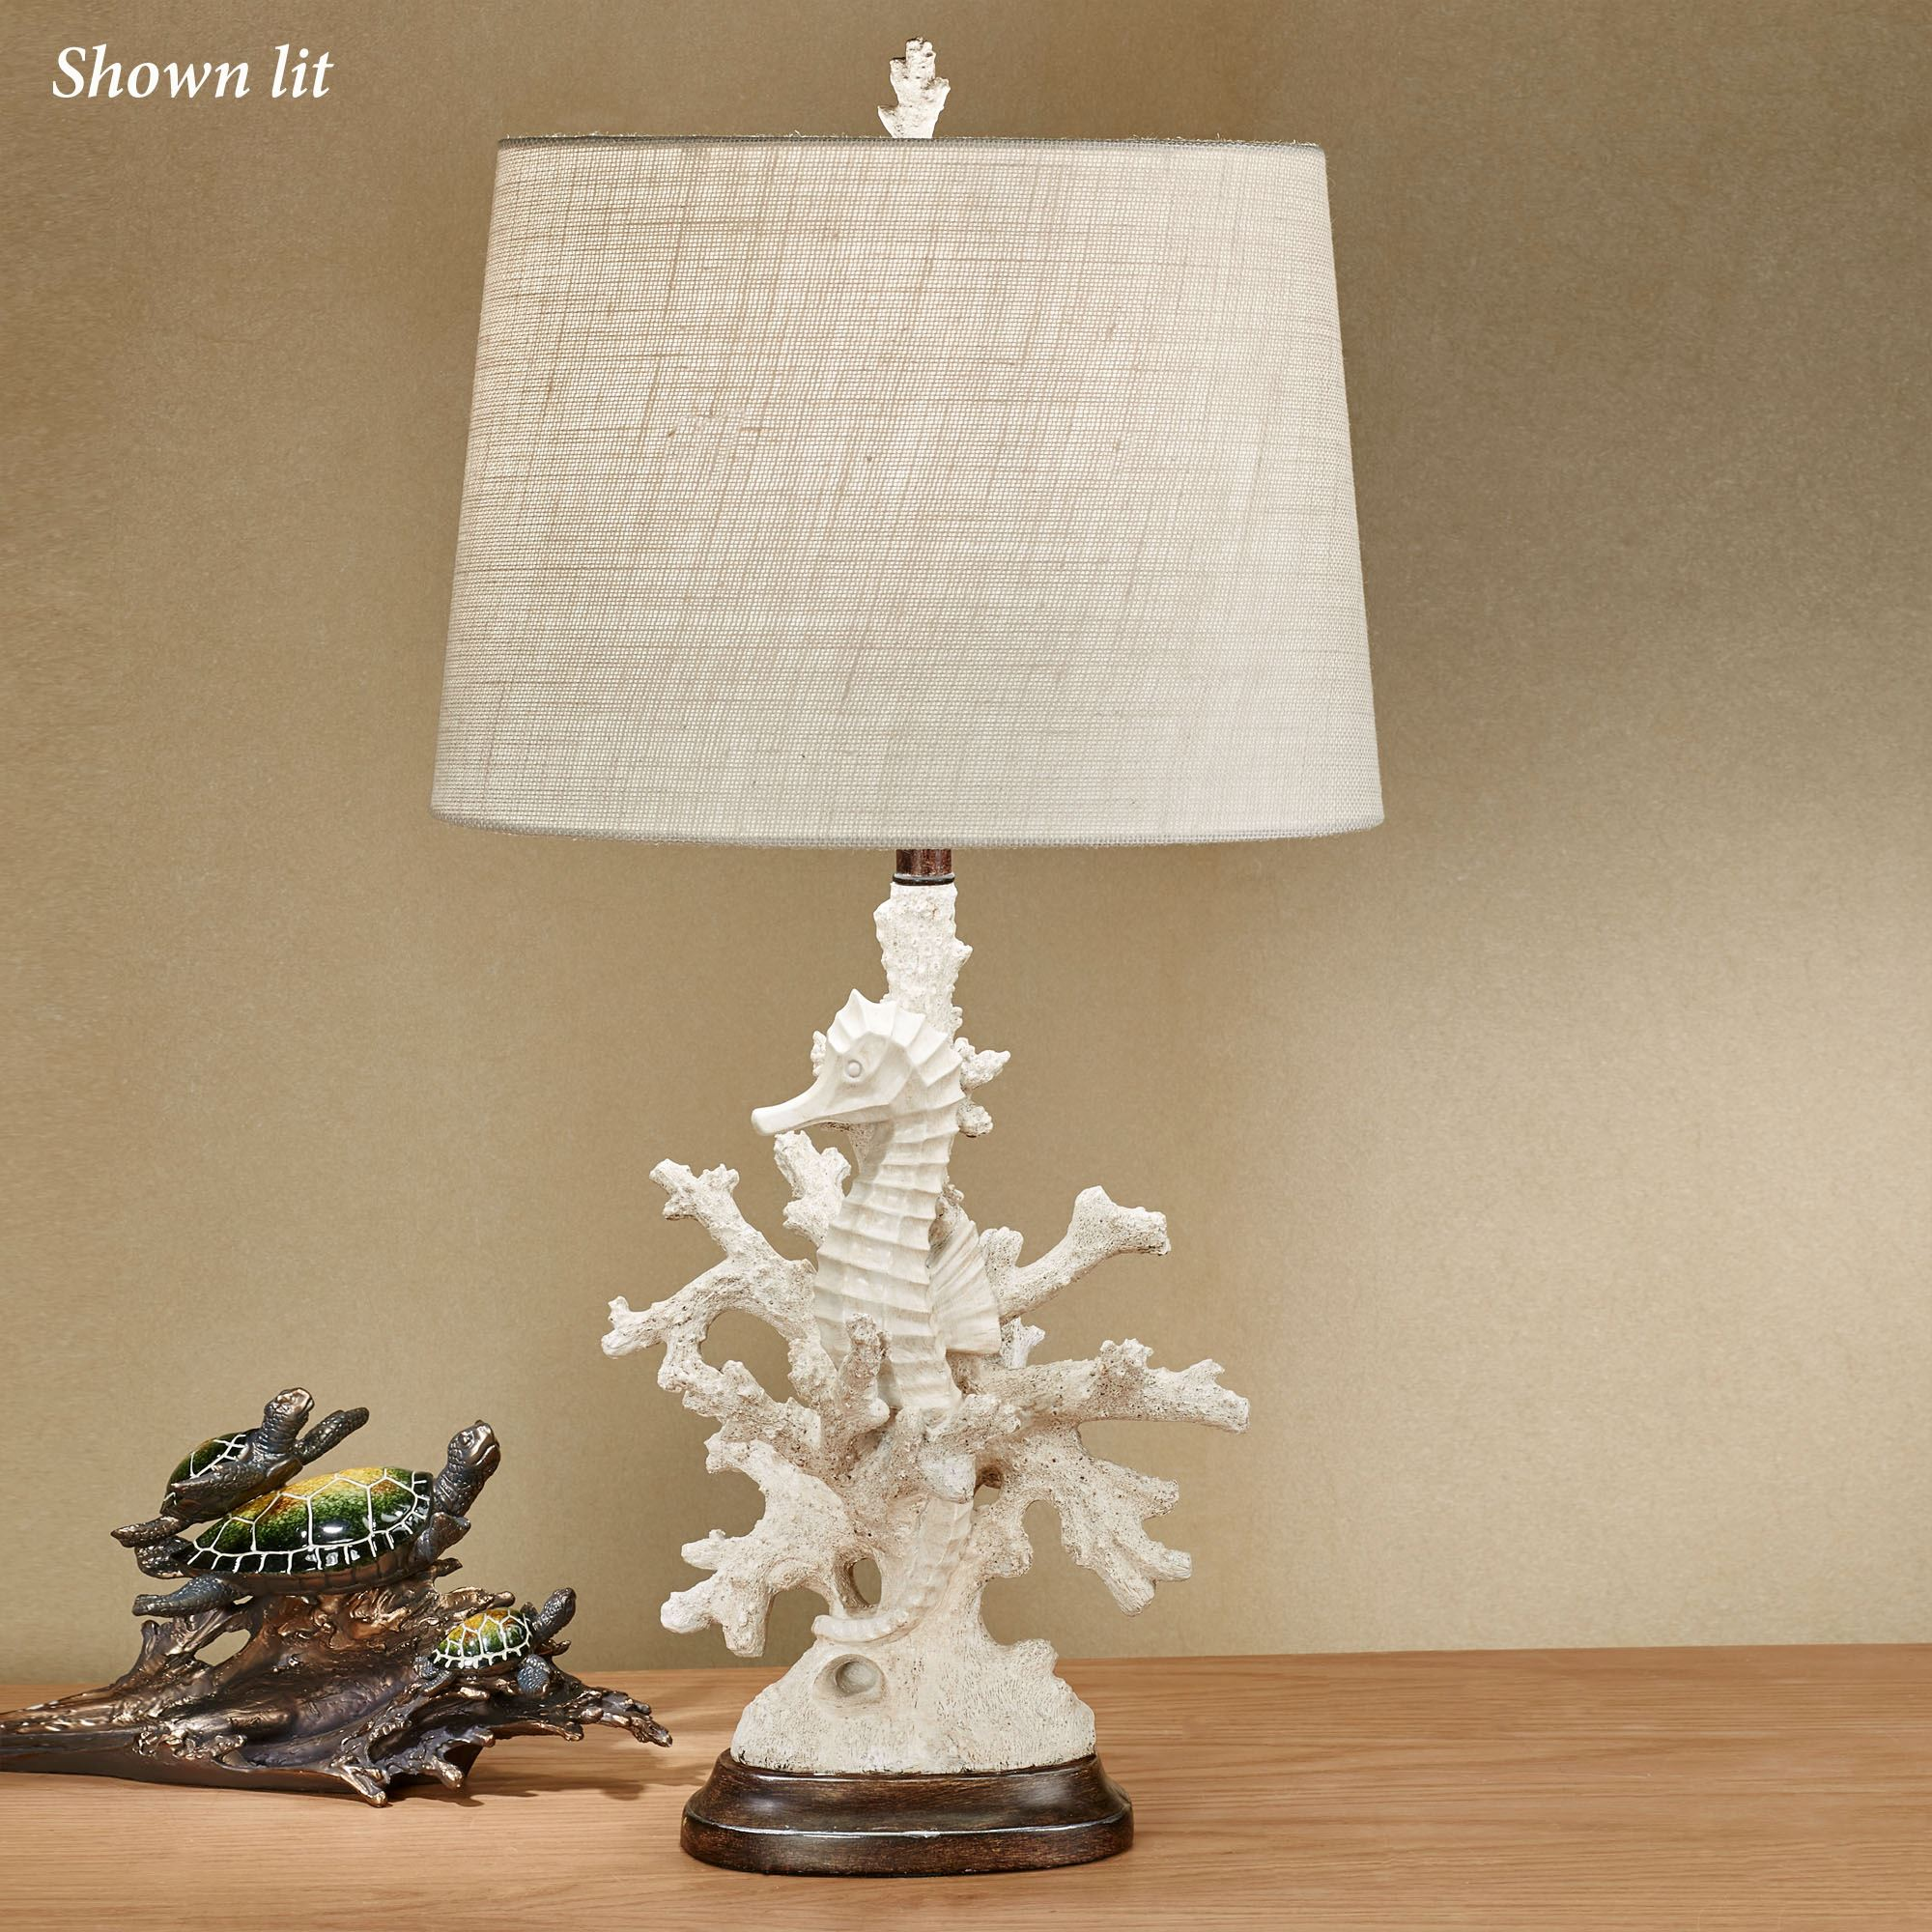 Seren Seahorse Coastal Table Lamp